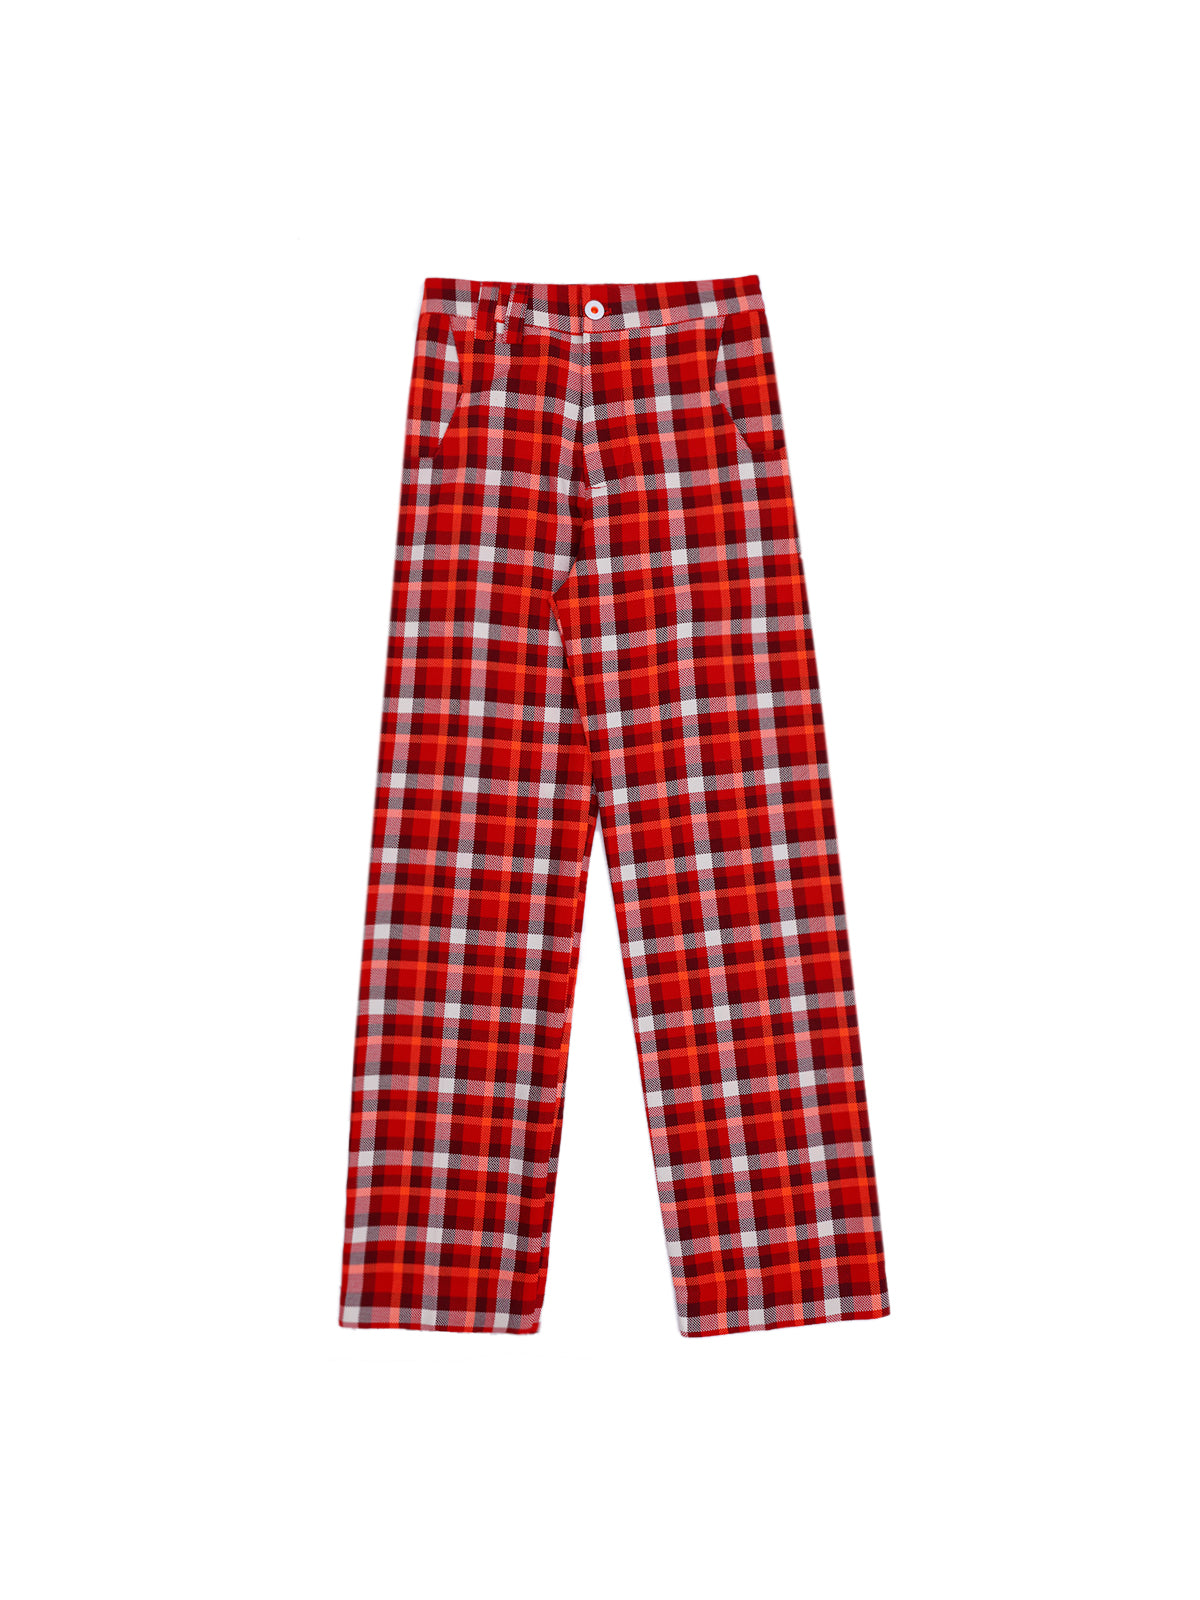 Granddad's Plaid Suit Trouser